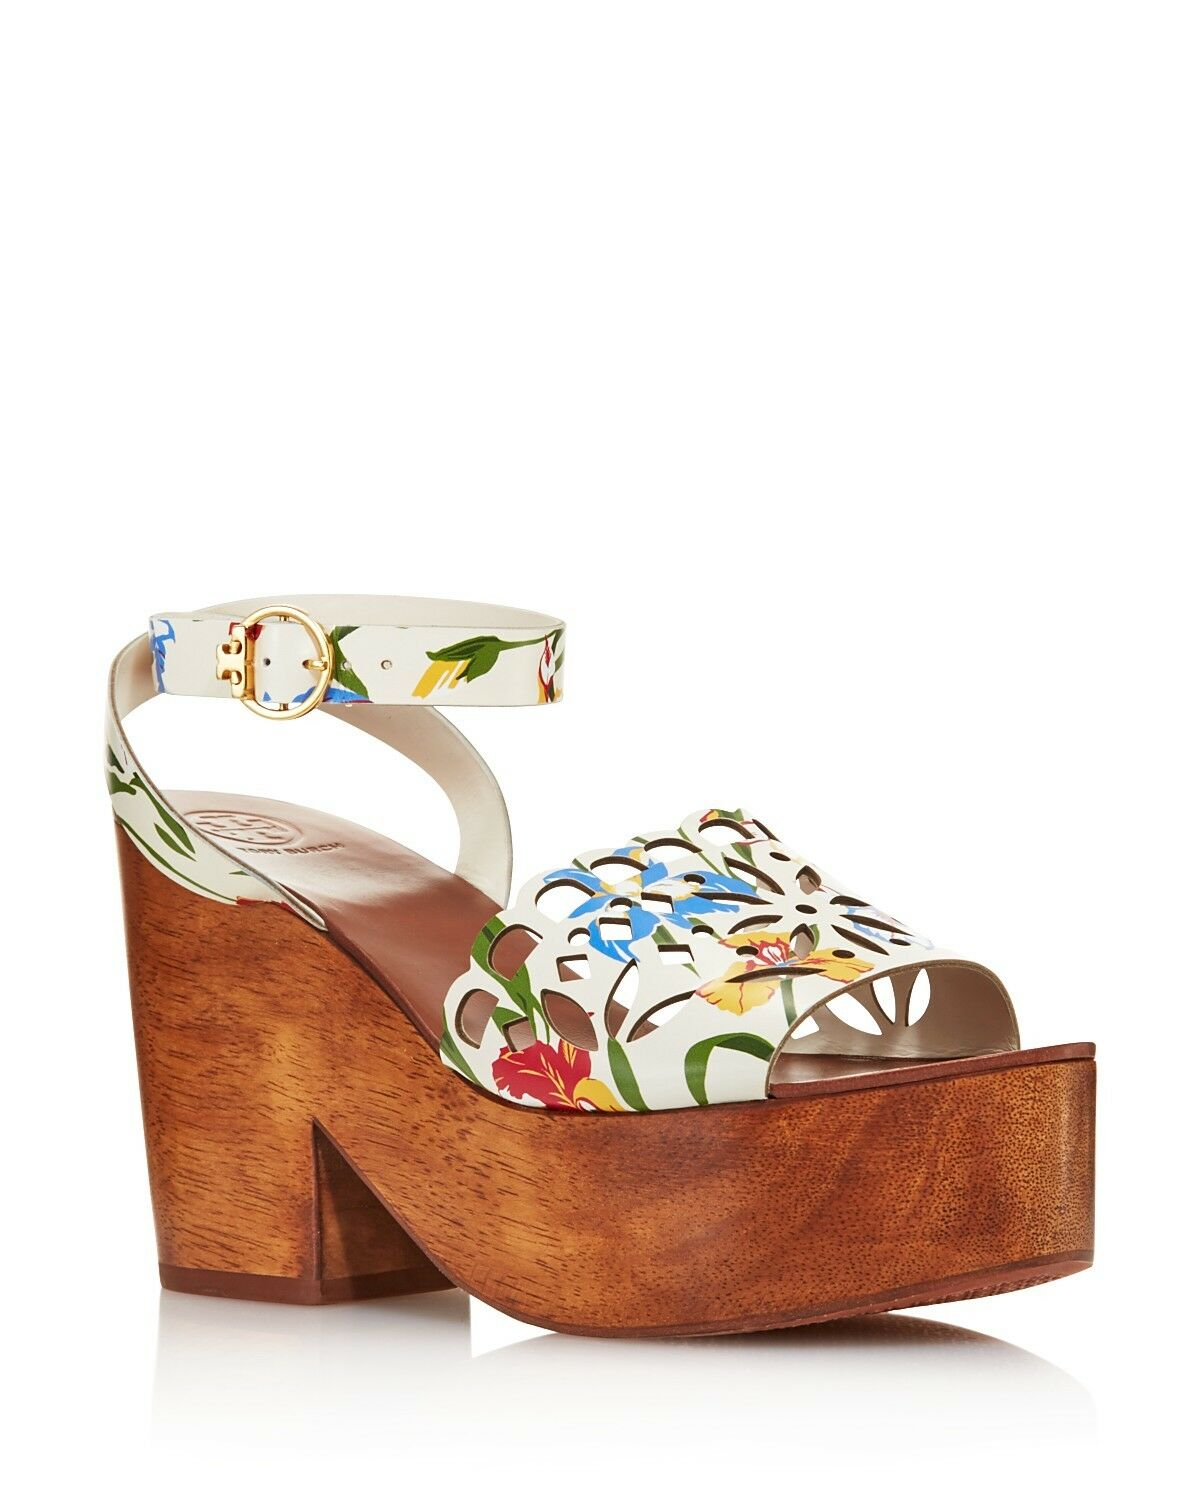 Tory Burch Femmes May May May Plateforme Cuir Sandales Talon Bloc Taille 7 Peint Iris dc889e